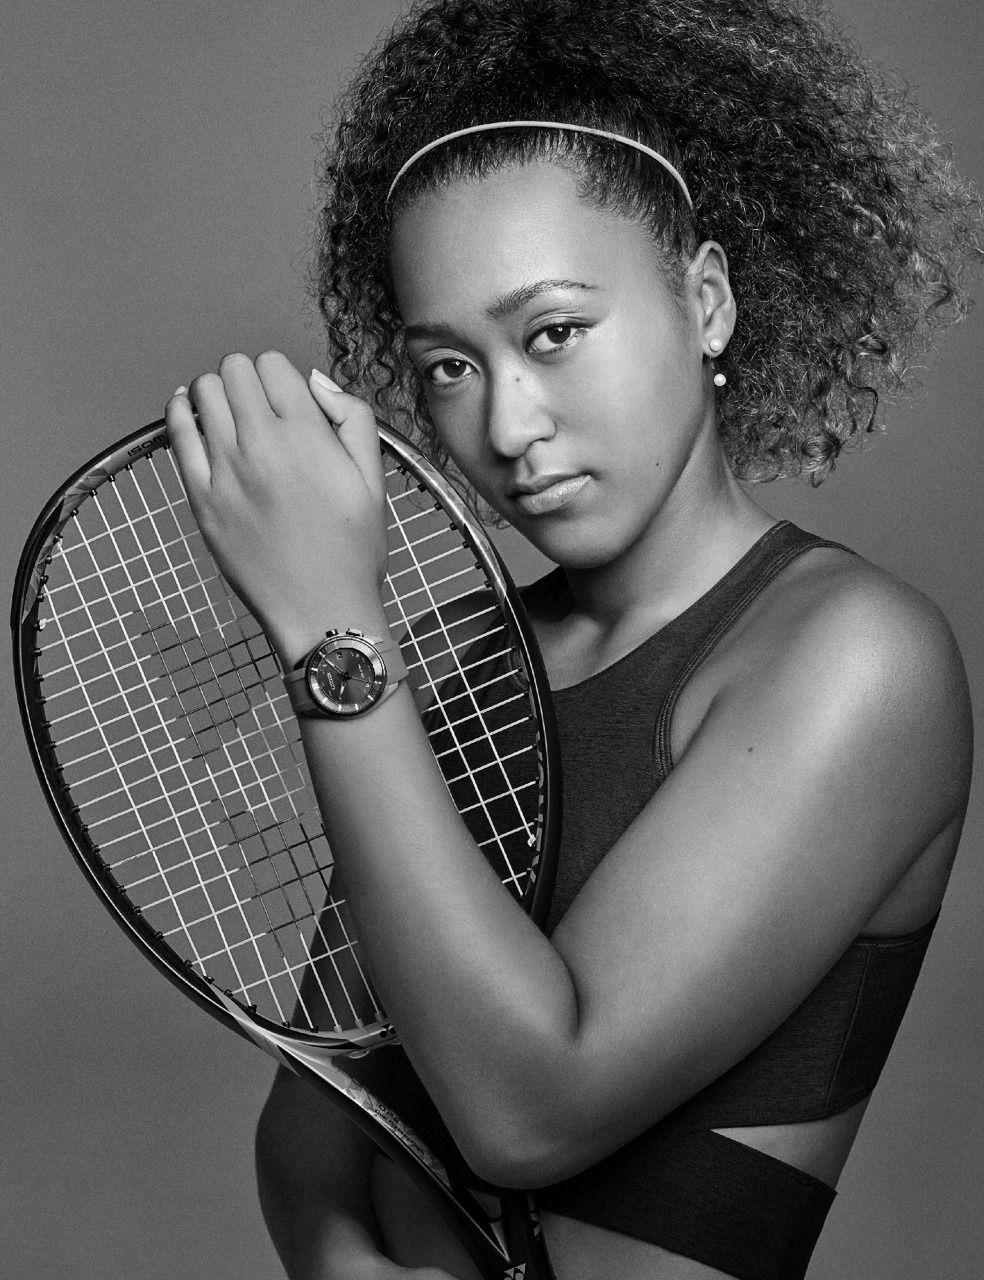 Pin By Edmond Collier On People Of Color Globally Tennis Players Female Athletic Models Osaka